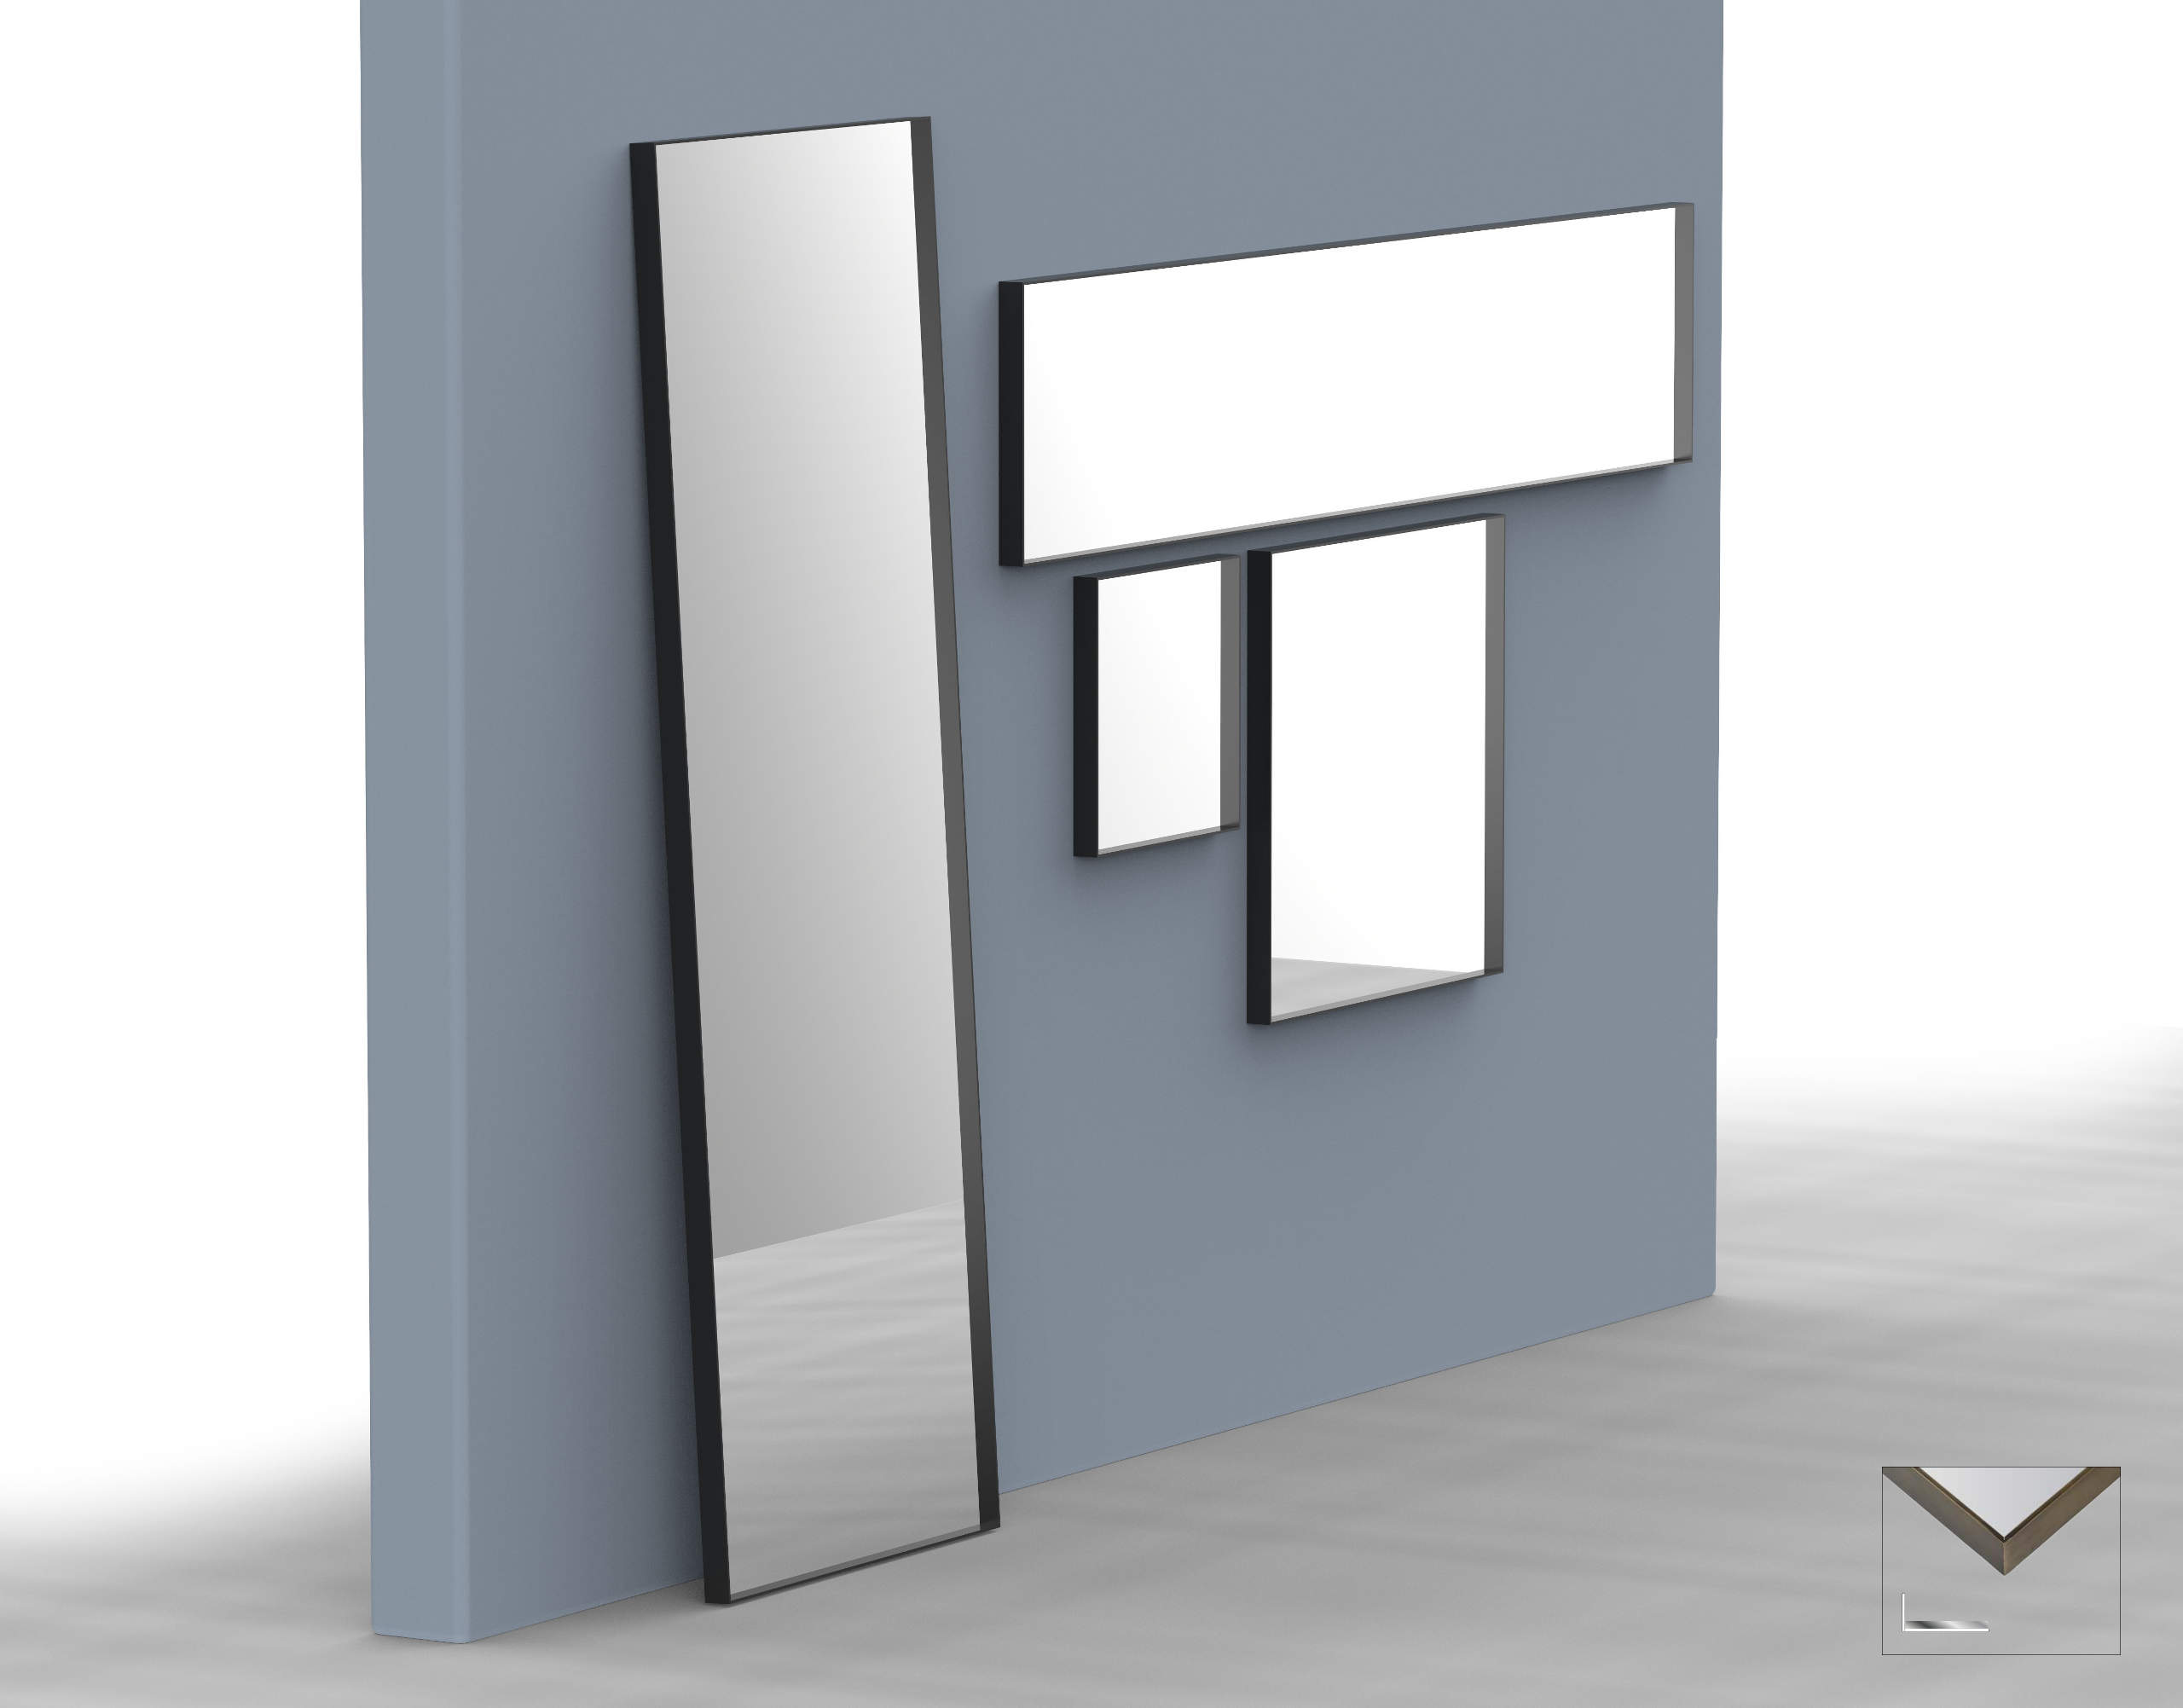 Albedo Design MINI Mirror with metal linear frame